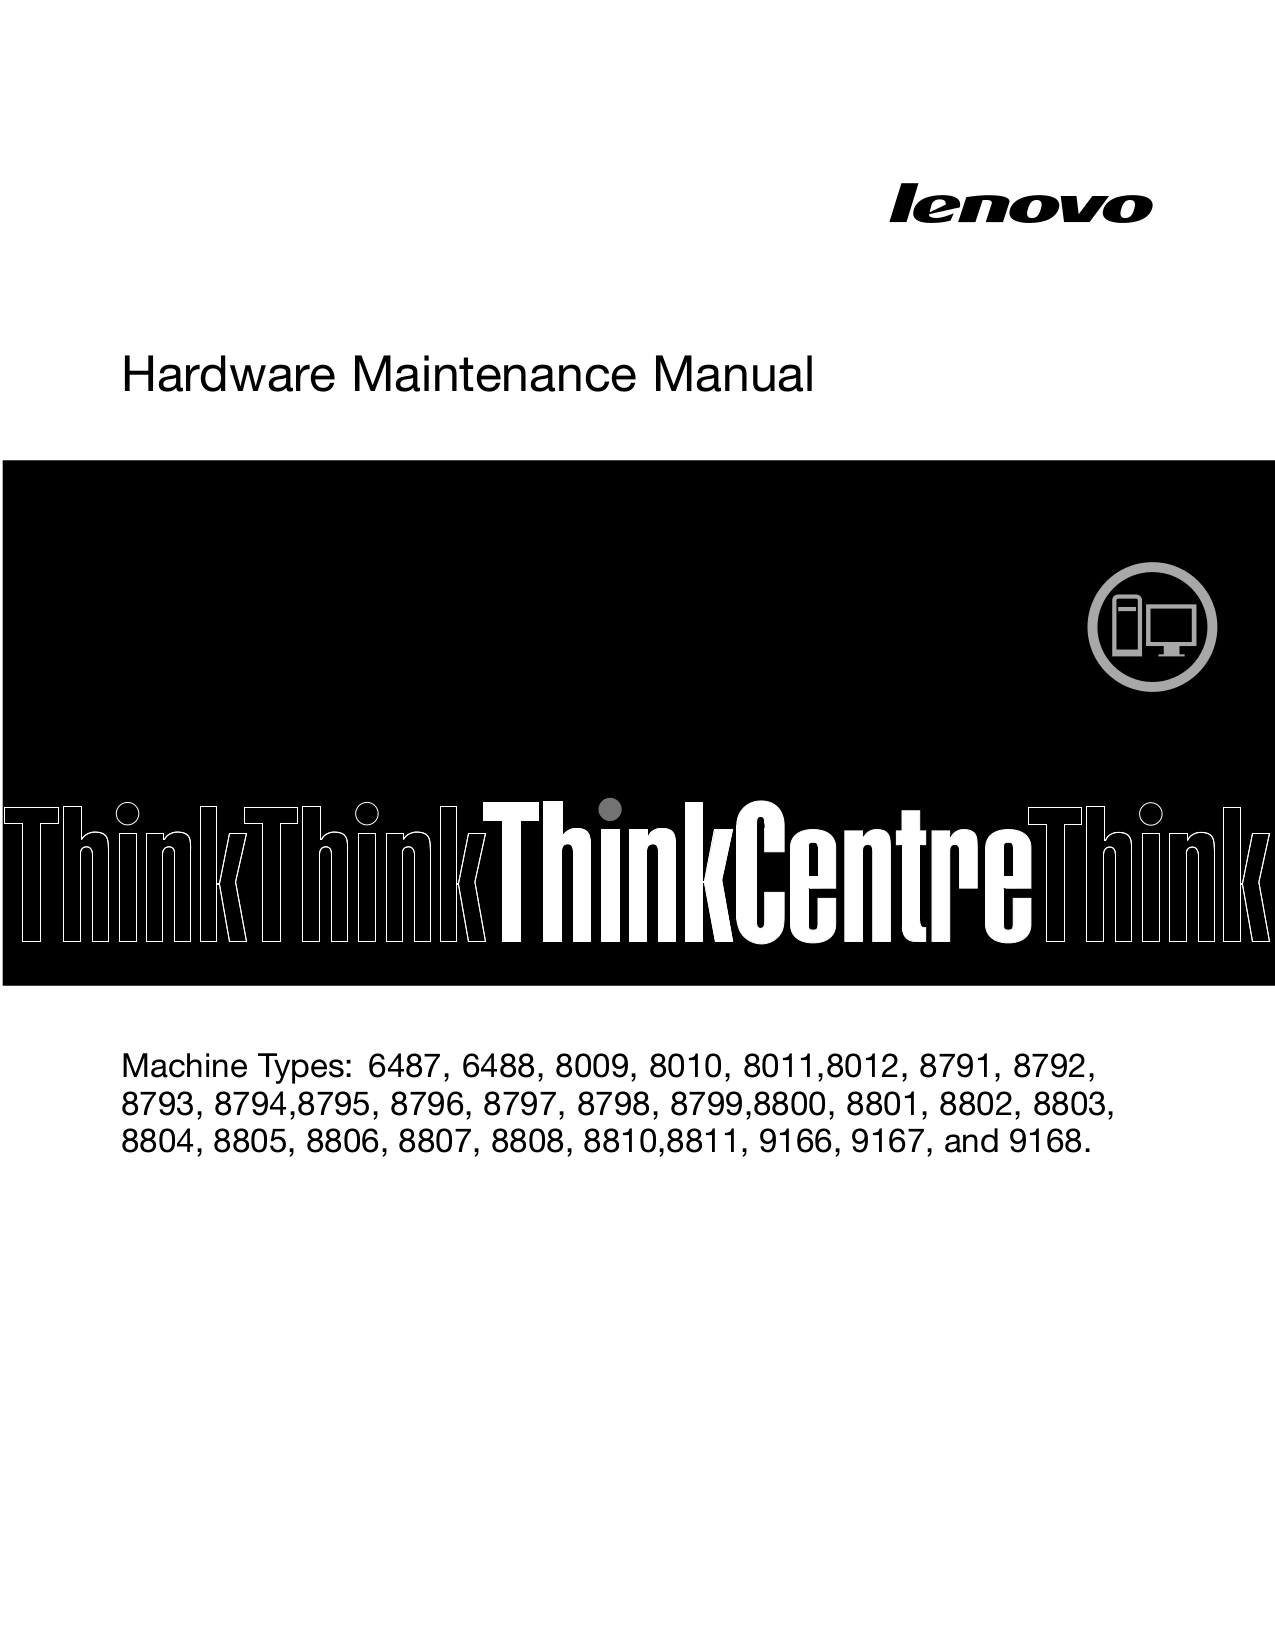 pdf for Lenovo Desktop ThinkCentre M55p 6487 manual